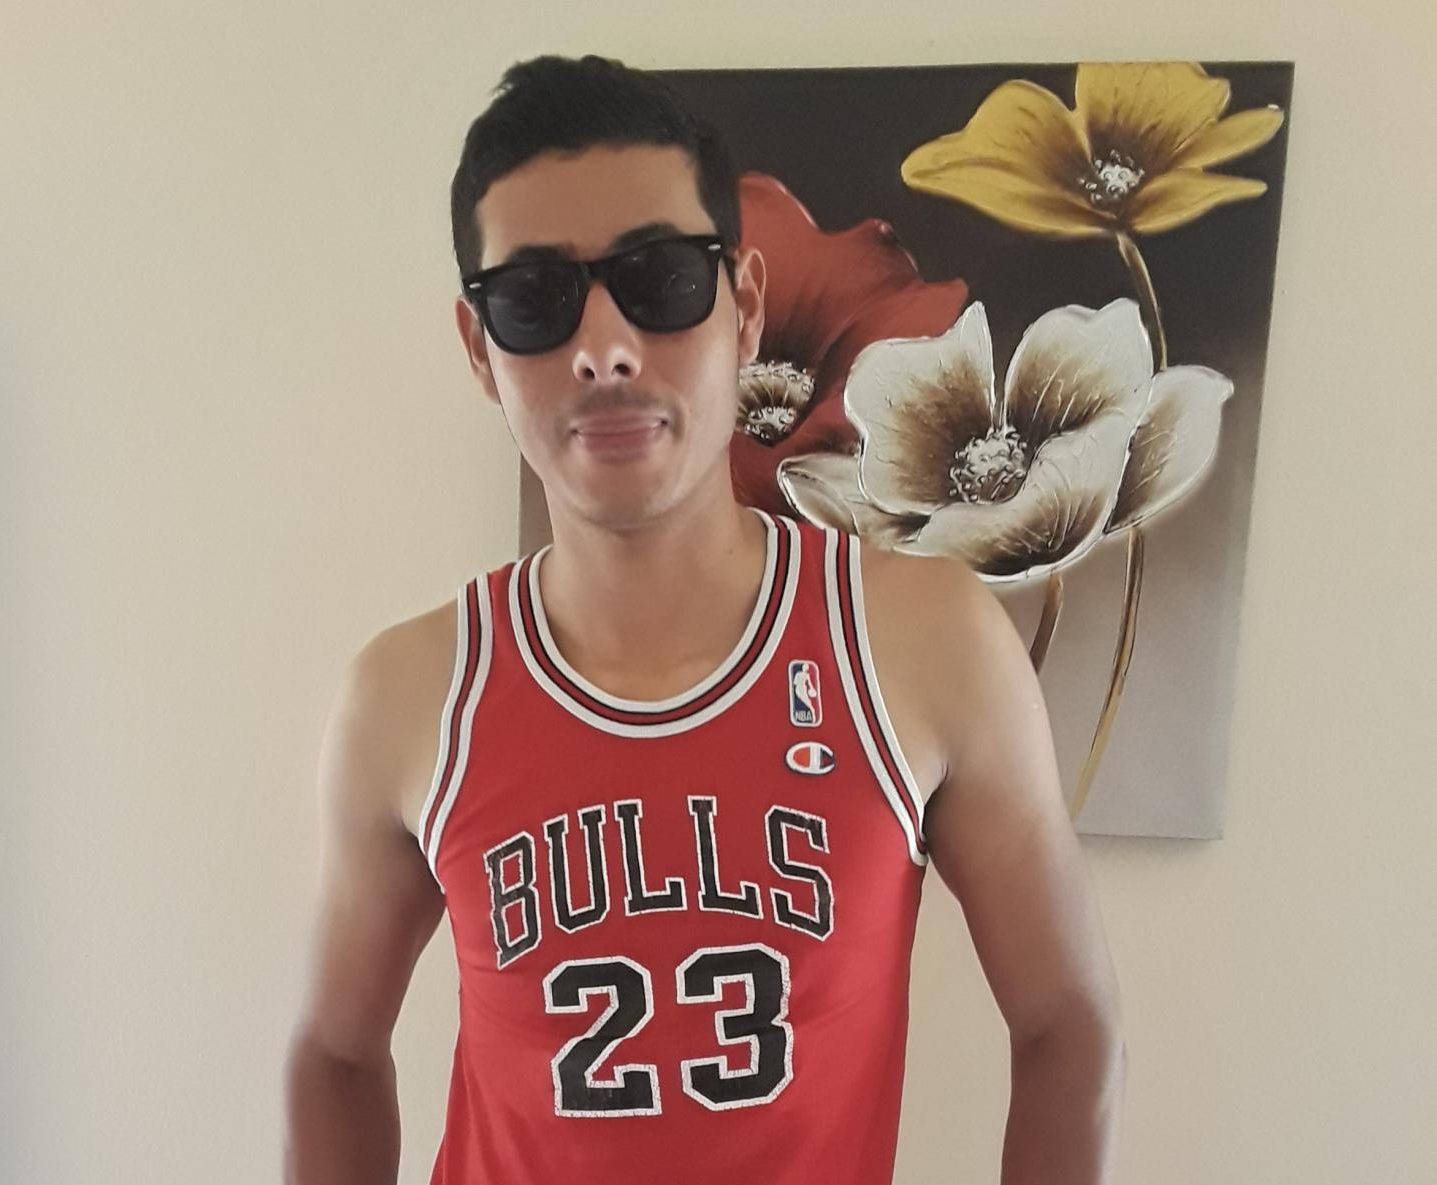 Alexis Levy poses proudly for the camera with his Bulls jersey and his shades on.